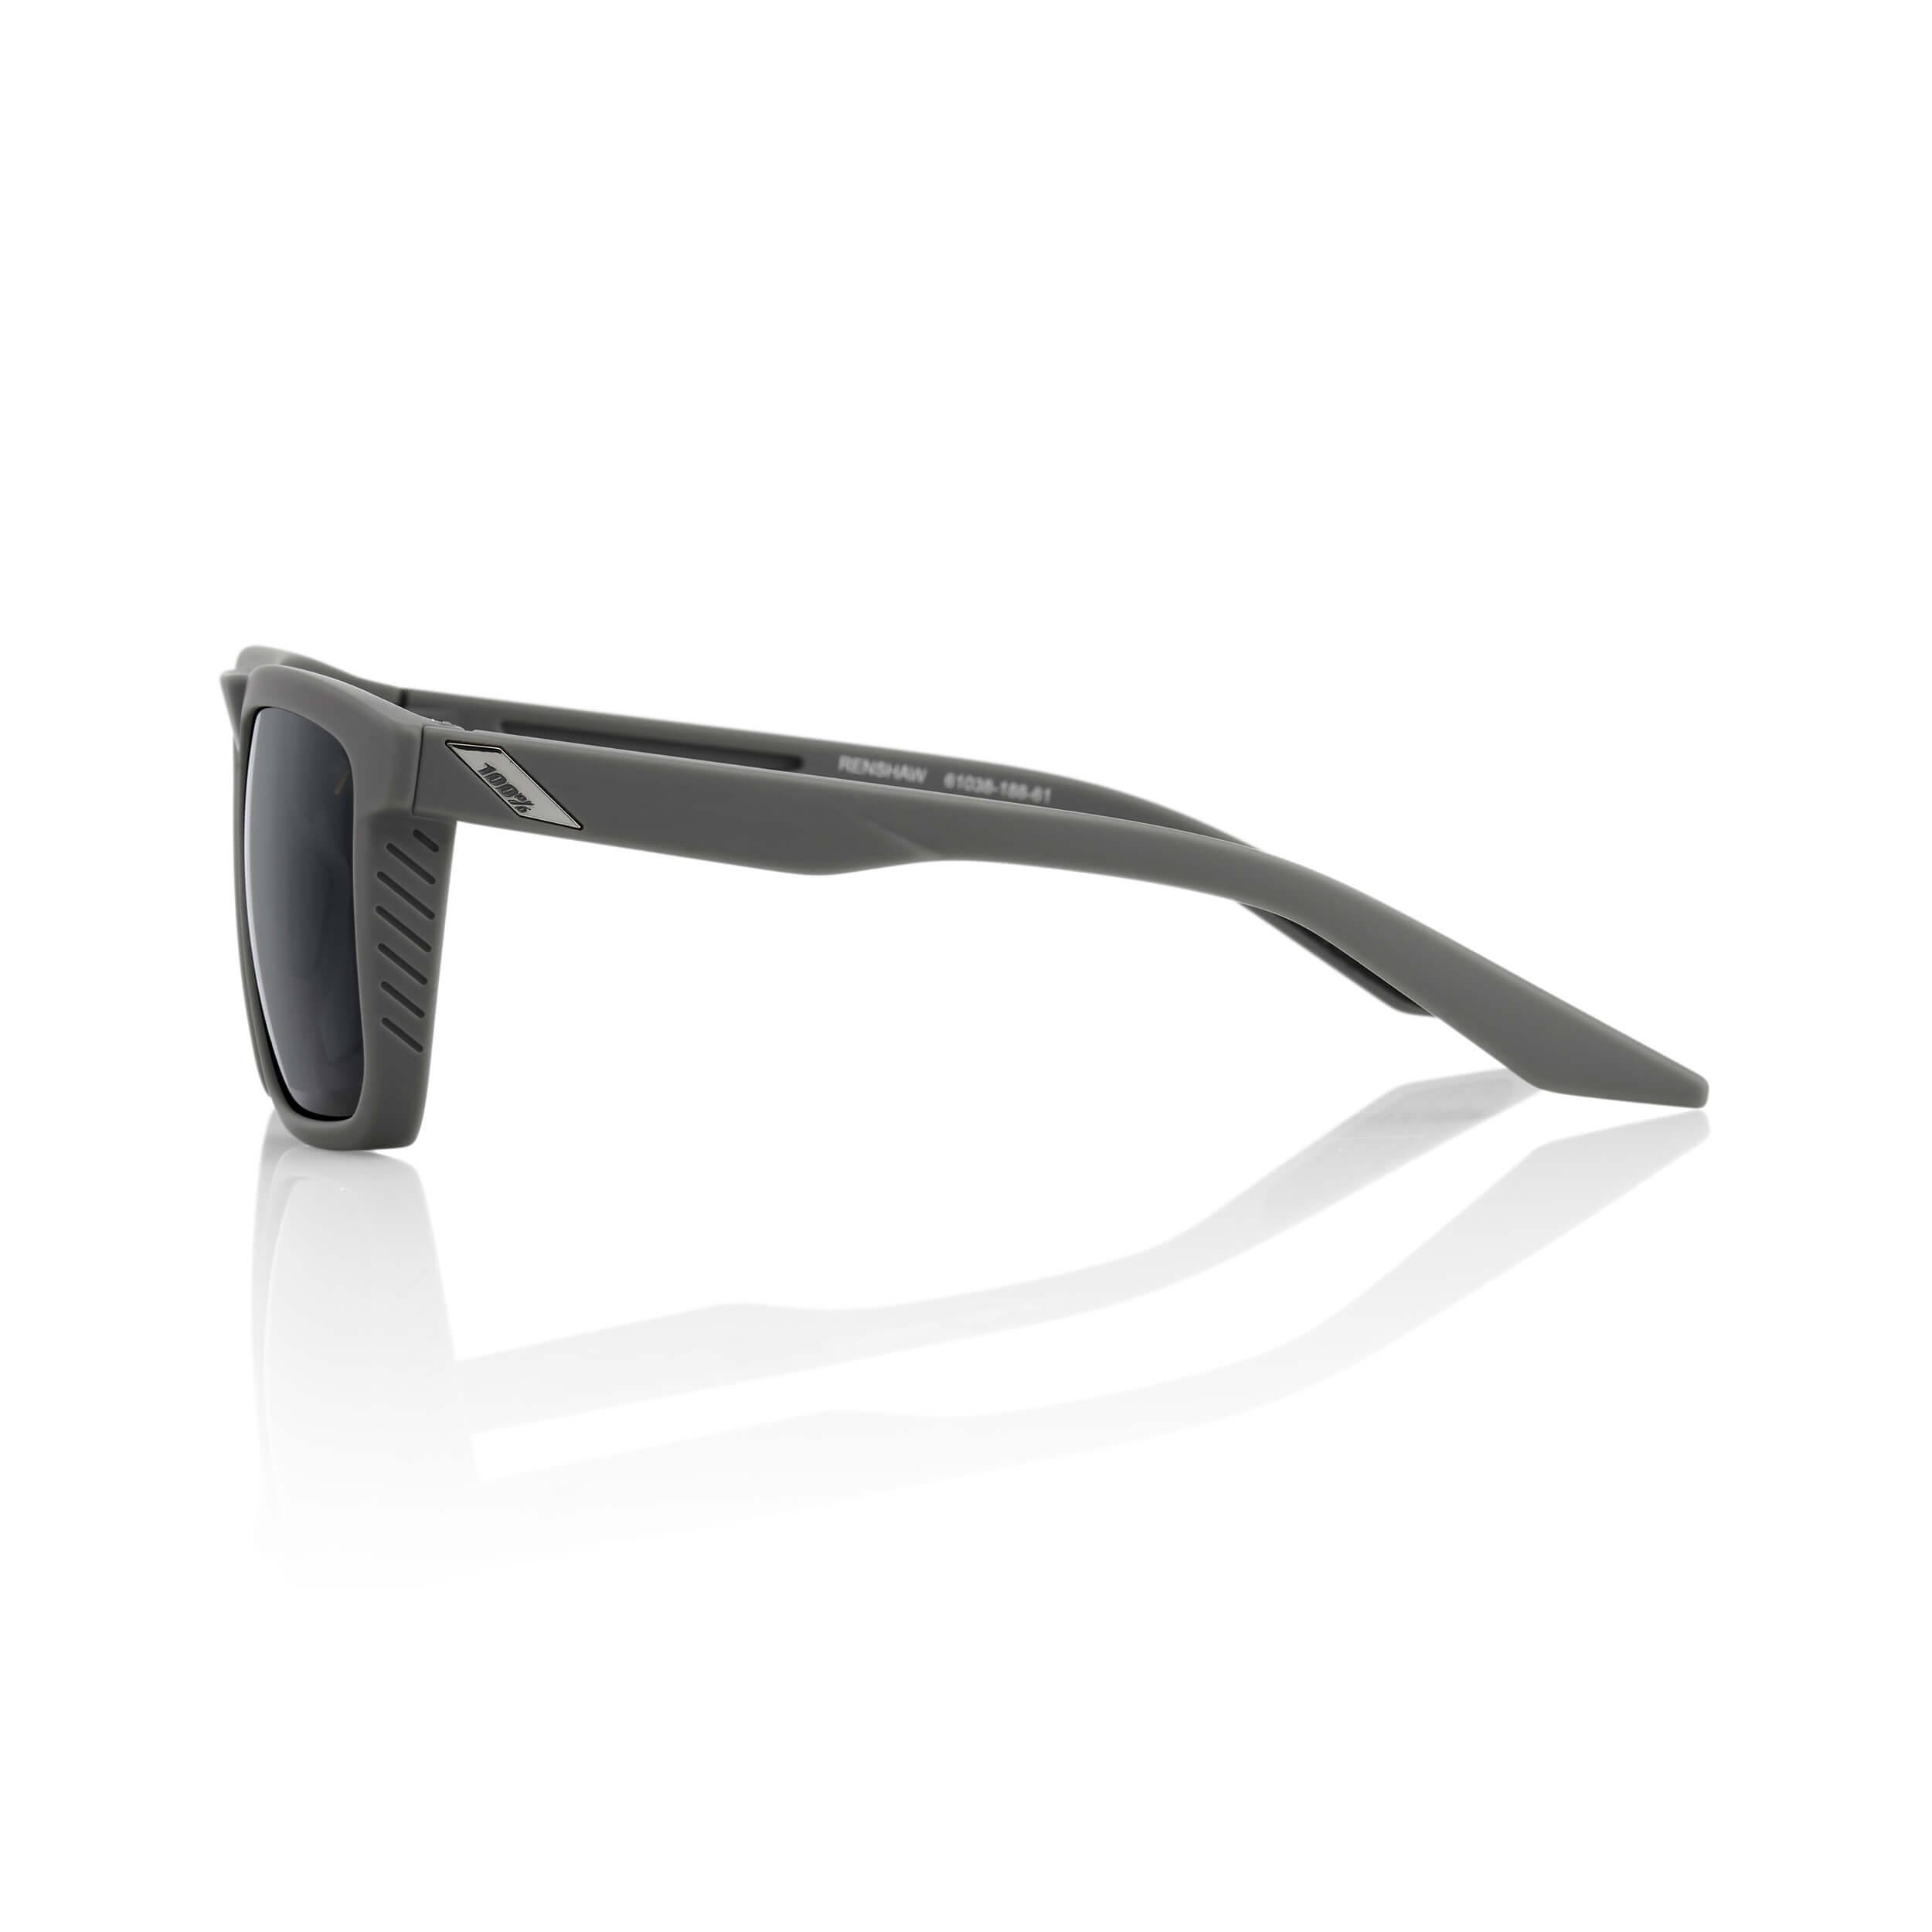 RENSHAW – Soft Tact Cool Grey – Black Mirror Lens